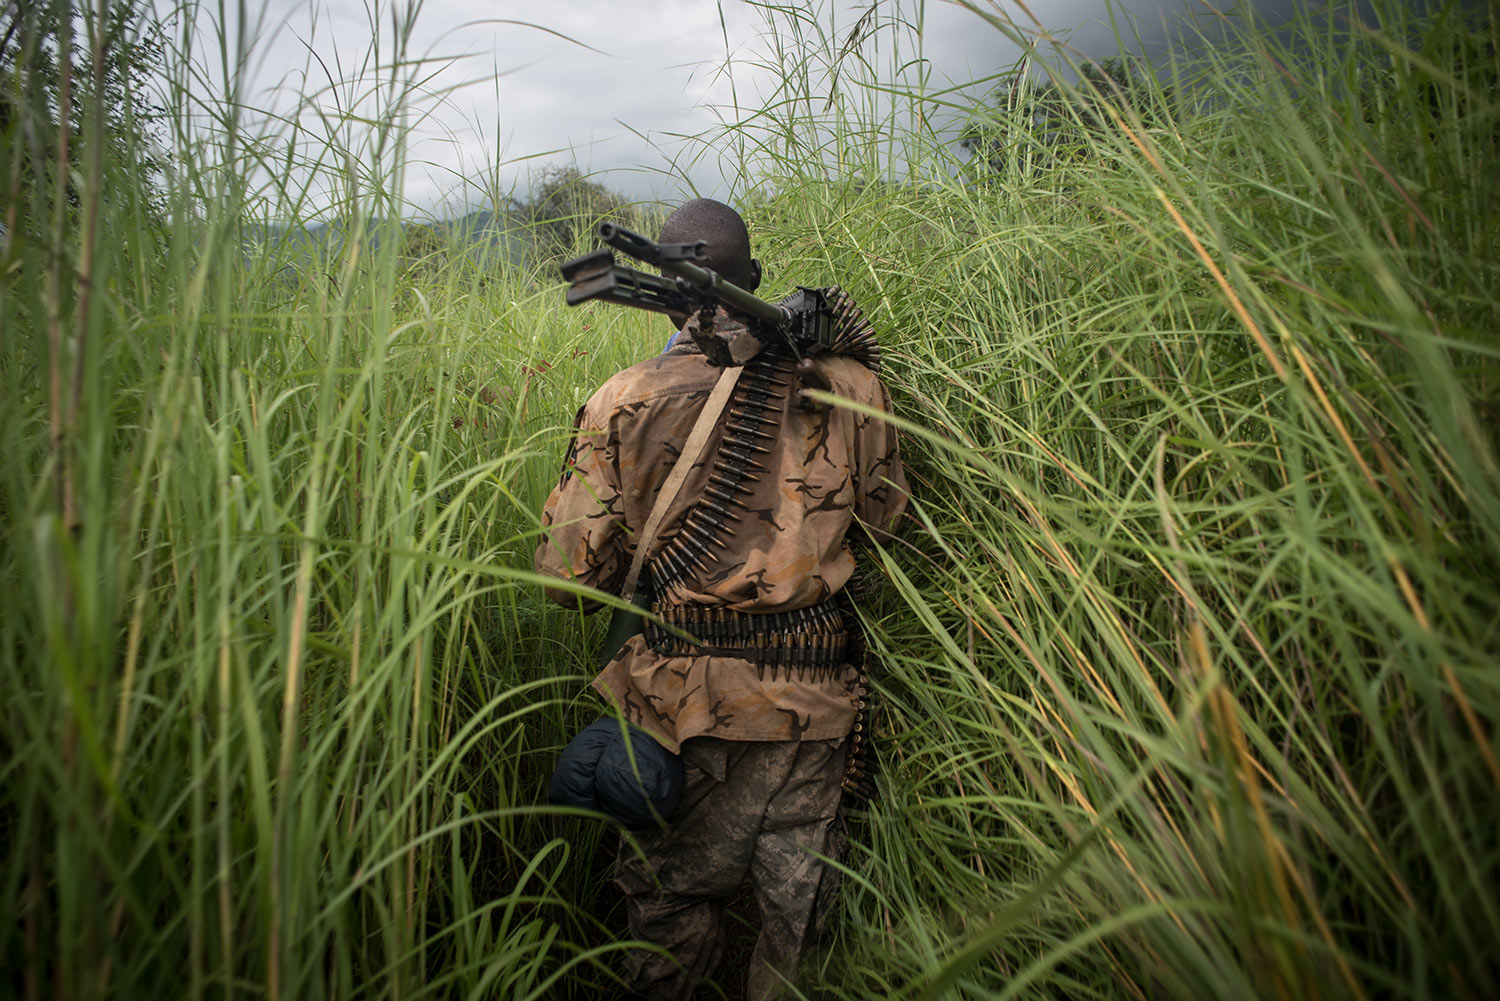 A SPLA-In Opposition soldier walks through the elephant grass in rebel-held Magwi county of South Sudan's Eastern Equatoria state on August 28, 2017. USHMM/Jason Patinkin.